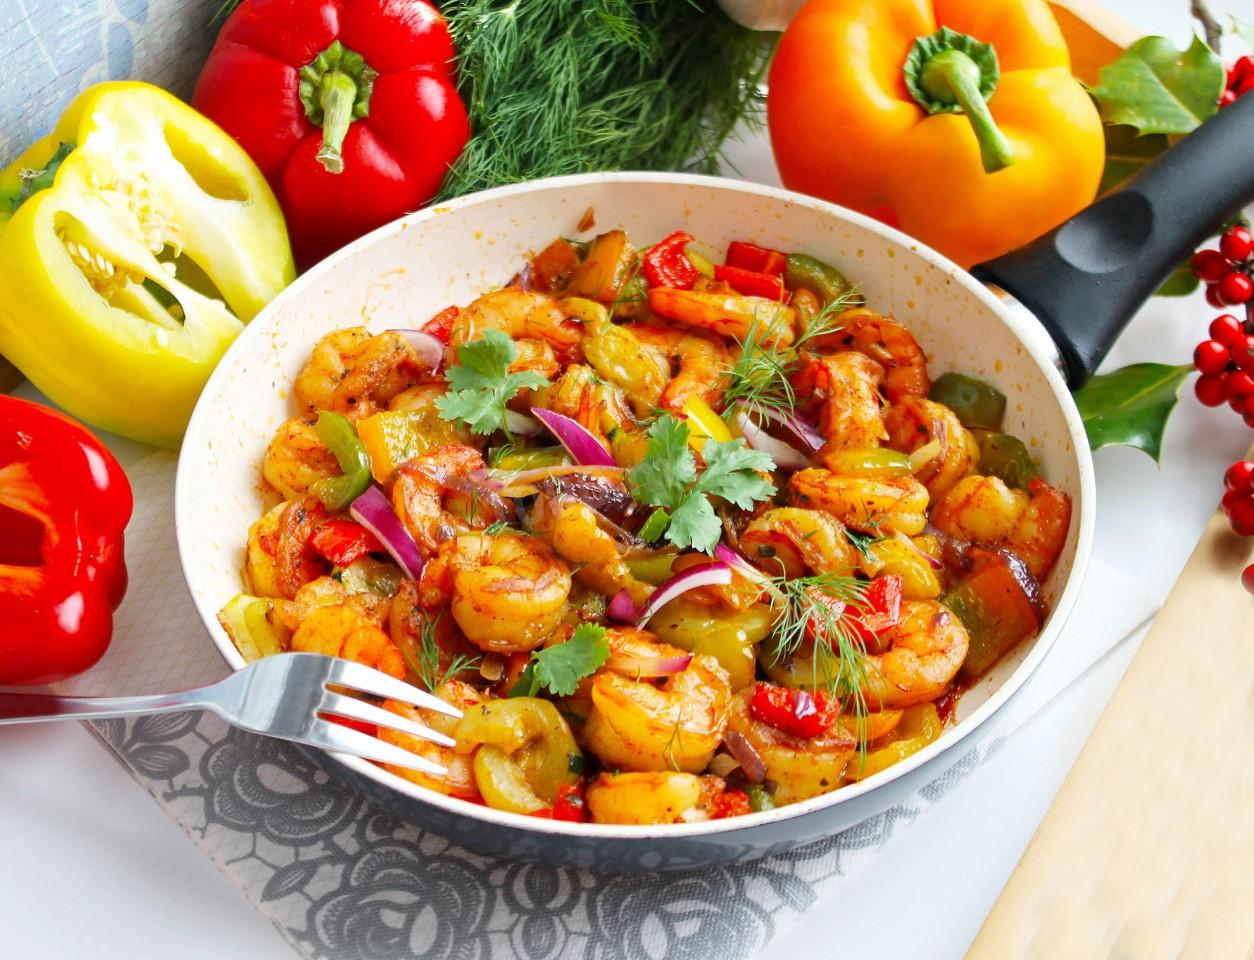 SHRIMPS WITH VEGETABLES WITH SOY SAUCE IN A FAN